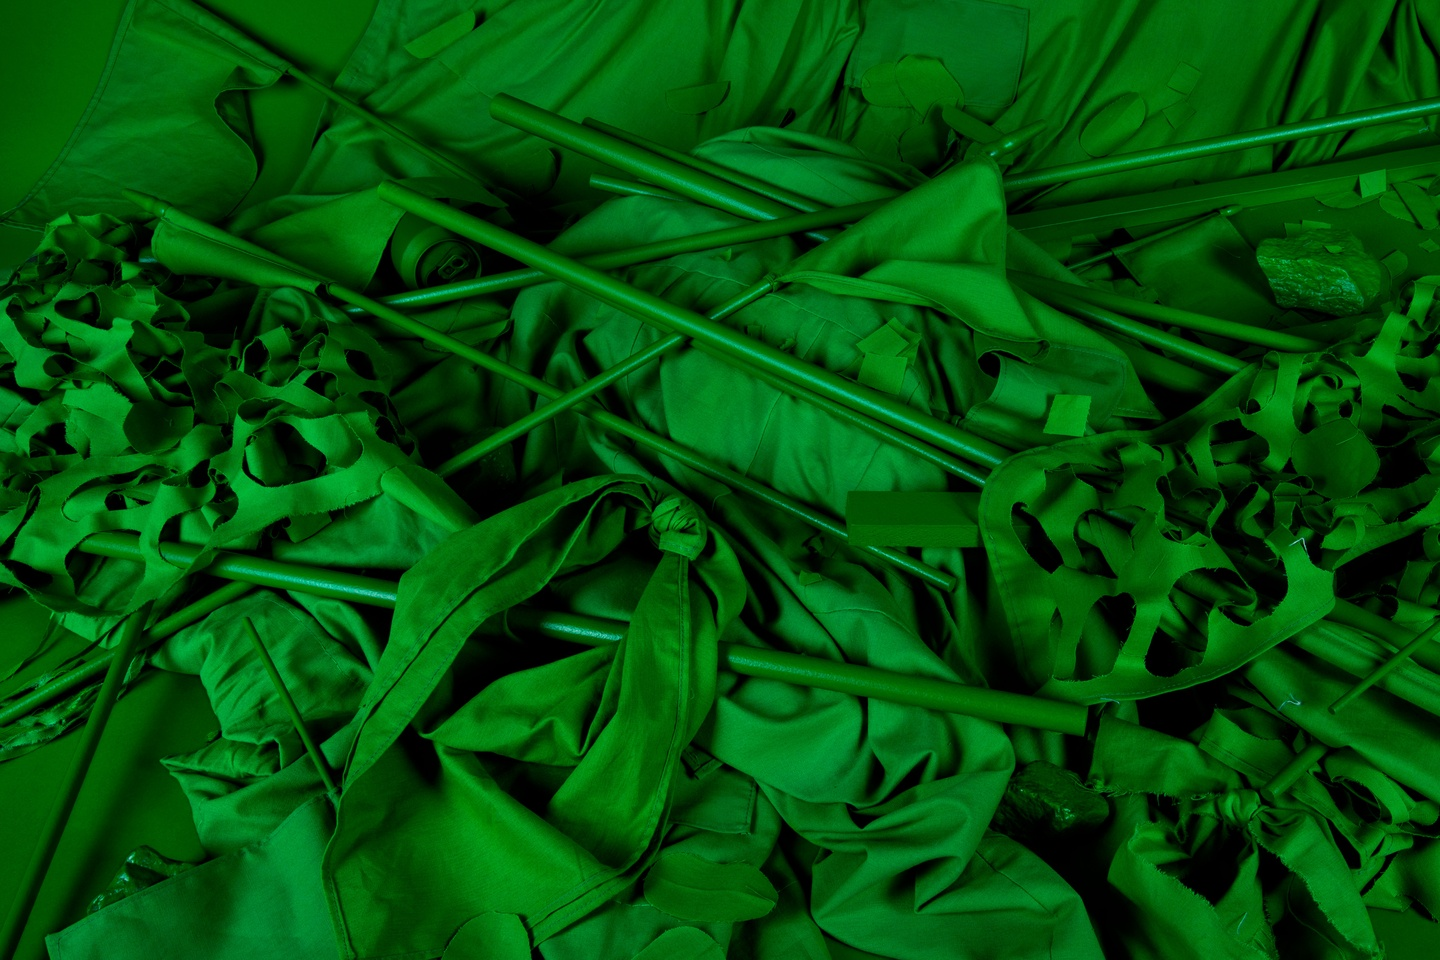 Photograph of protest props, fabricated entirely in bright green chroma key color.